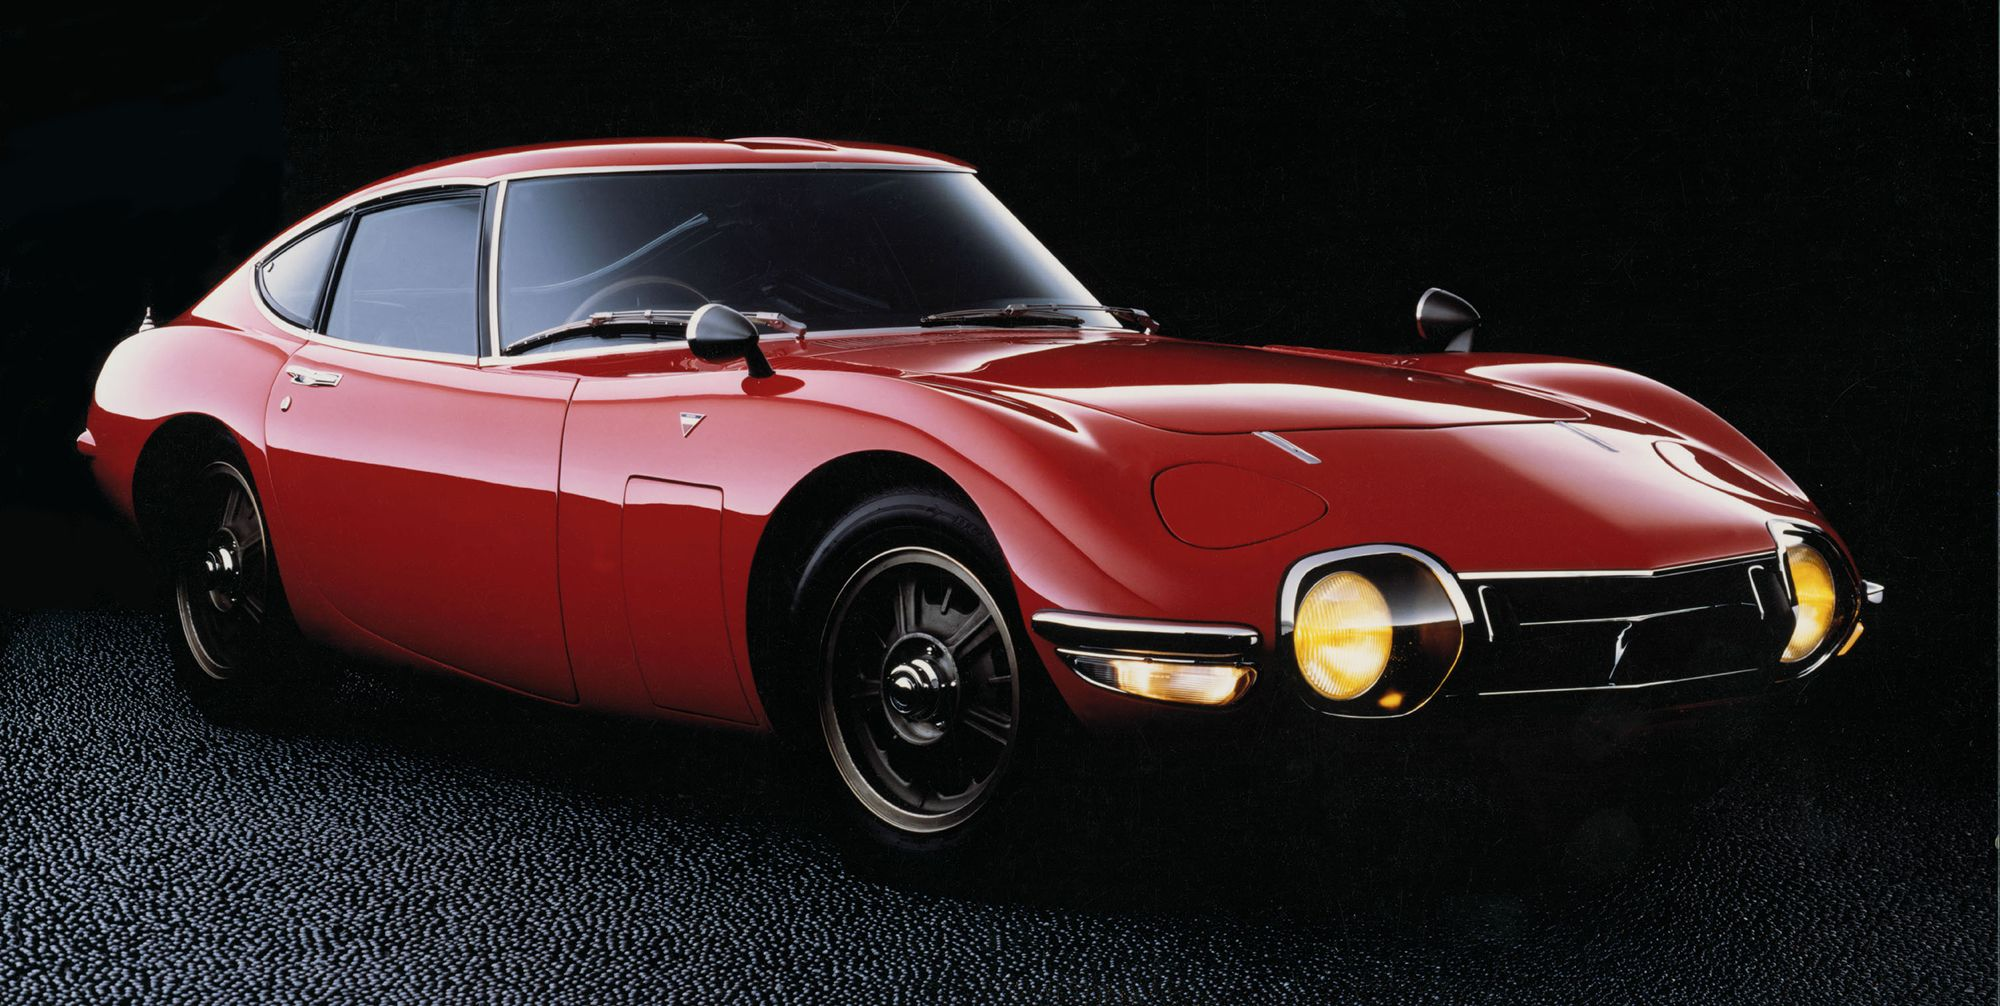 Classic Japanese Sports Cars Classic Japanese Sports Cars 2019 01 15